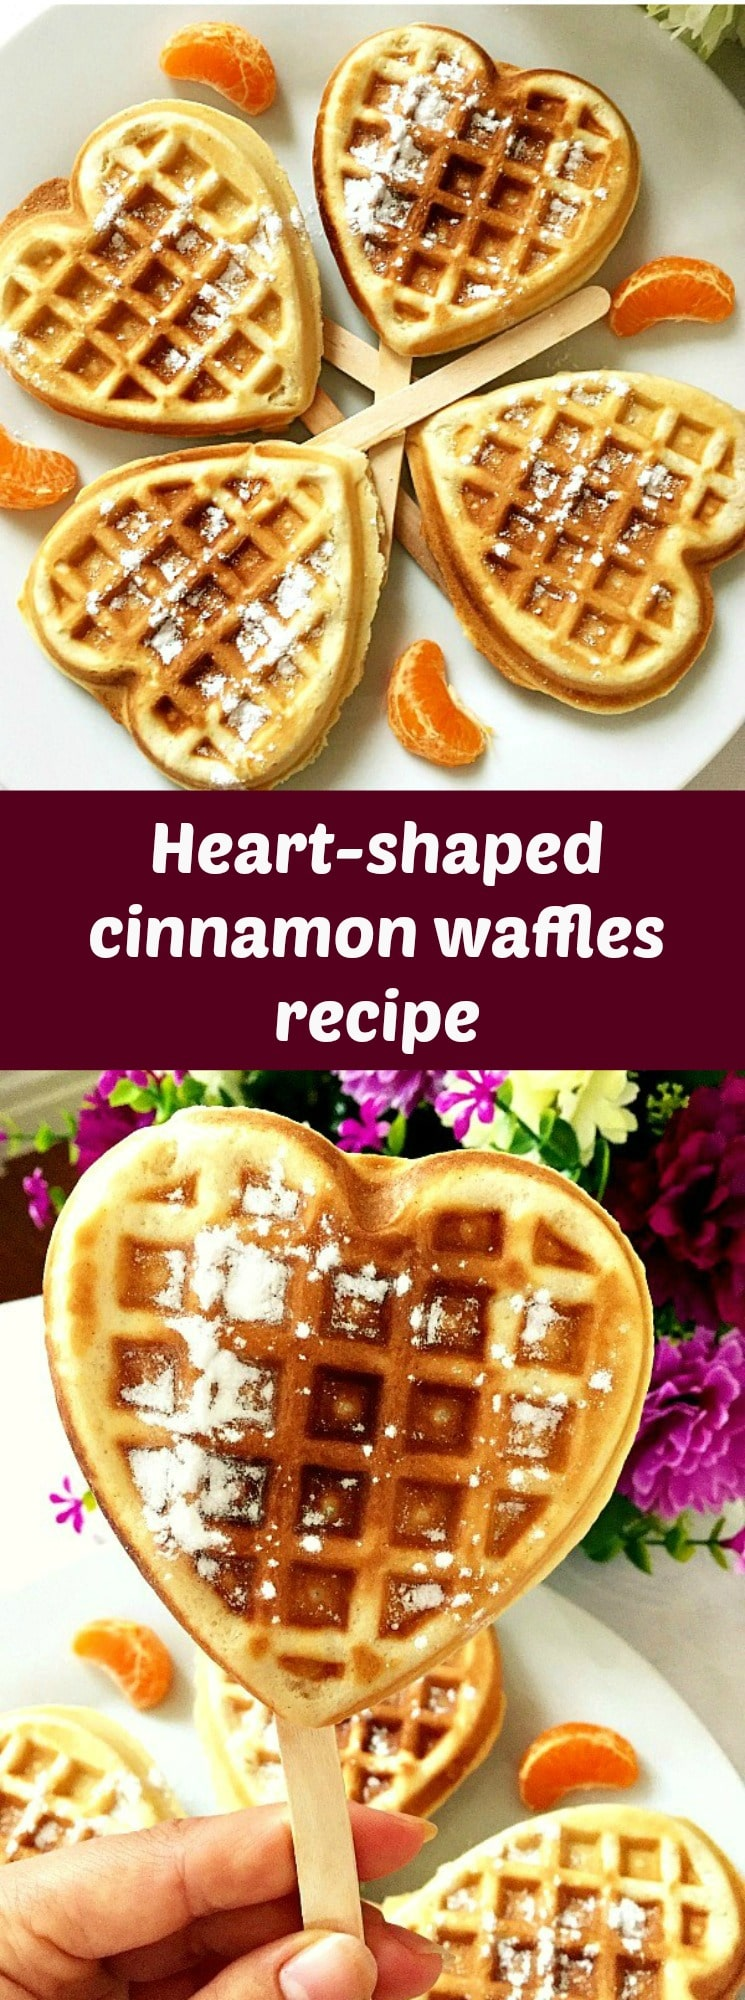 Heart-shaped cinnamon waffles recipe, a delicious treat for breakfast or brunch. Fluffy, cinammony, and super easy to make.